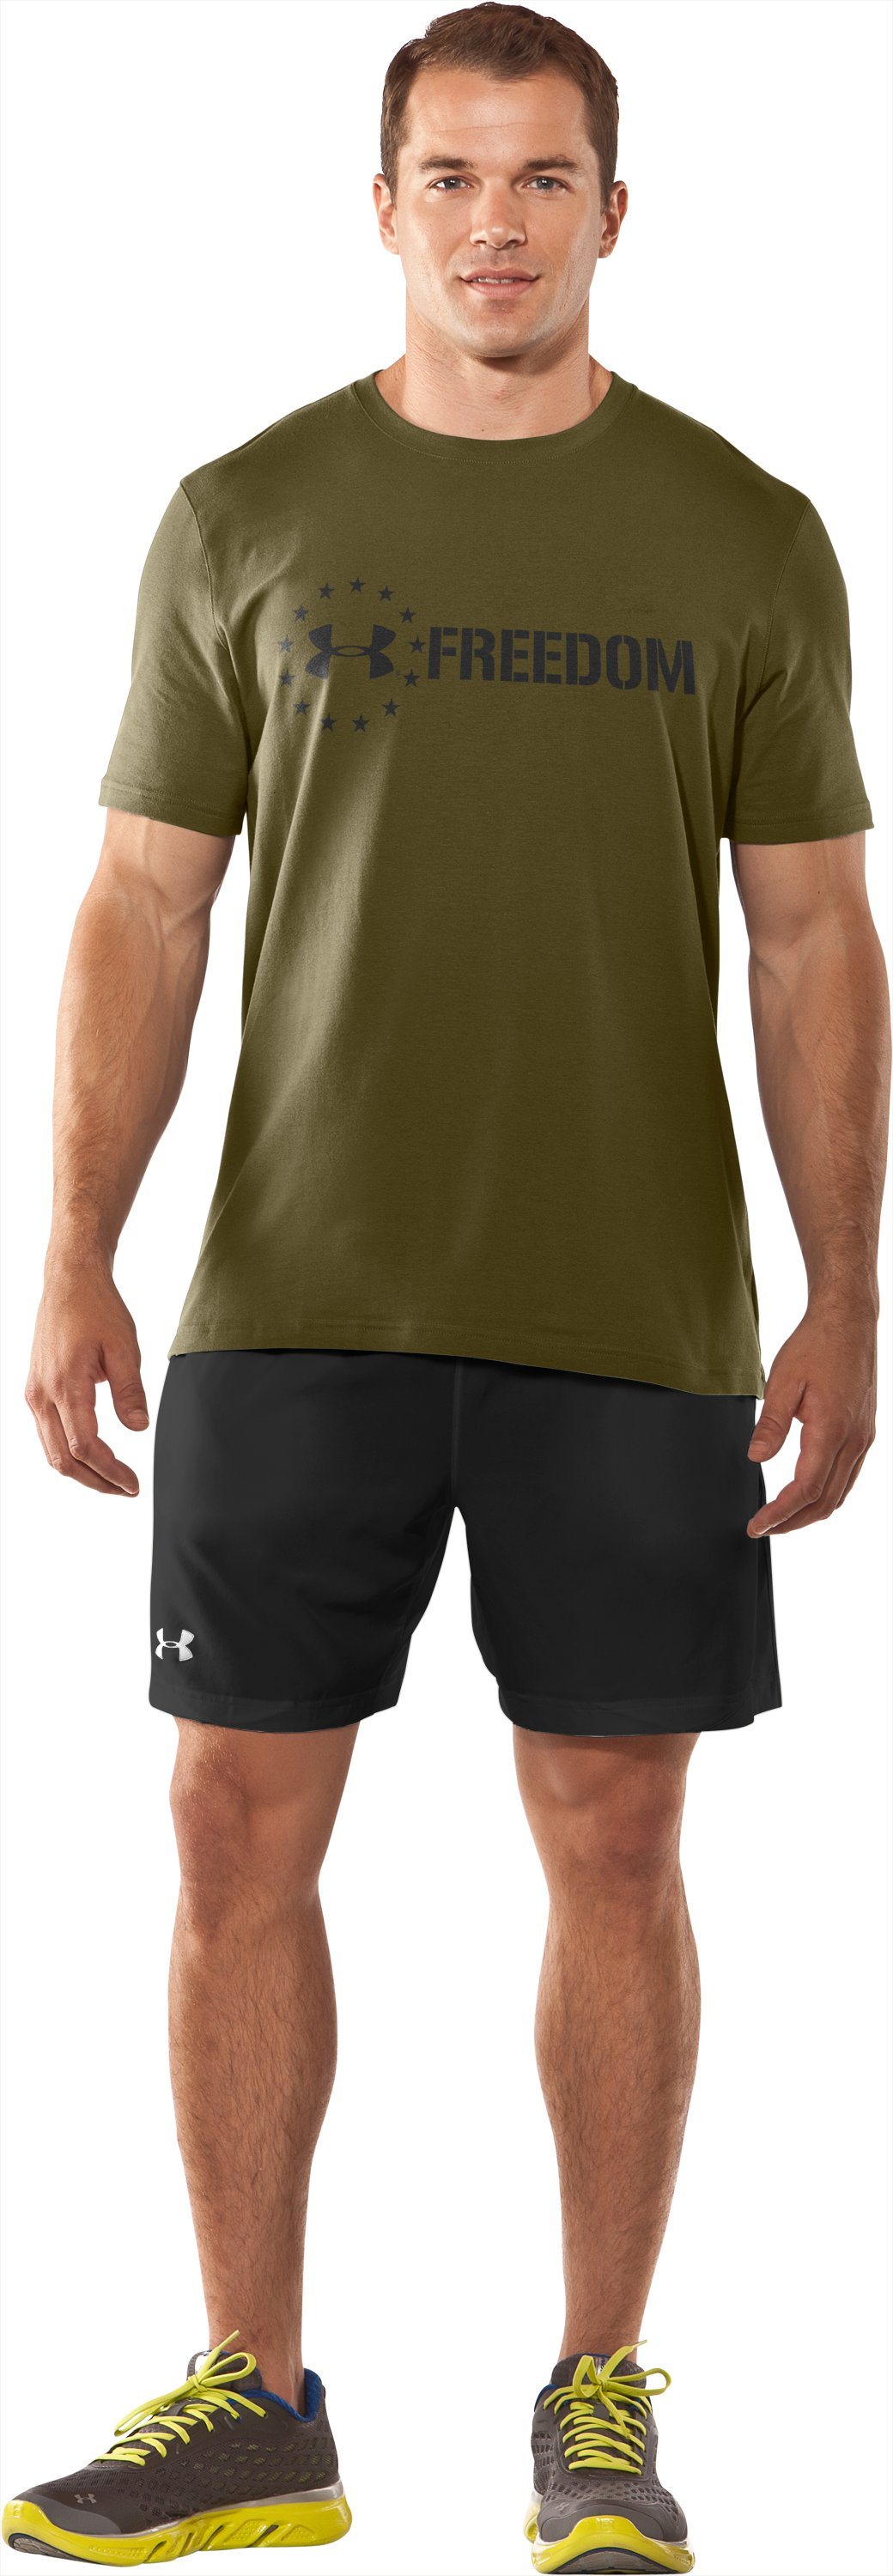 Men's Deployment T-Shirt, Marine OD Green, Front